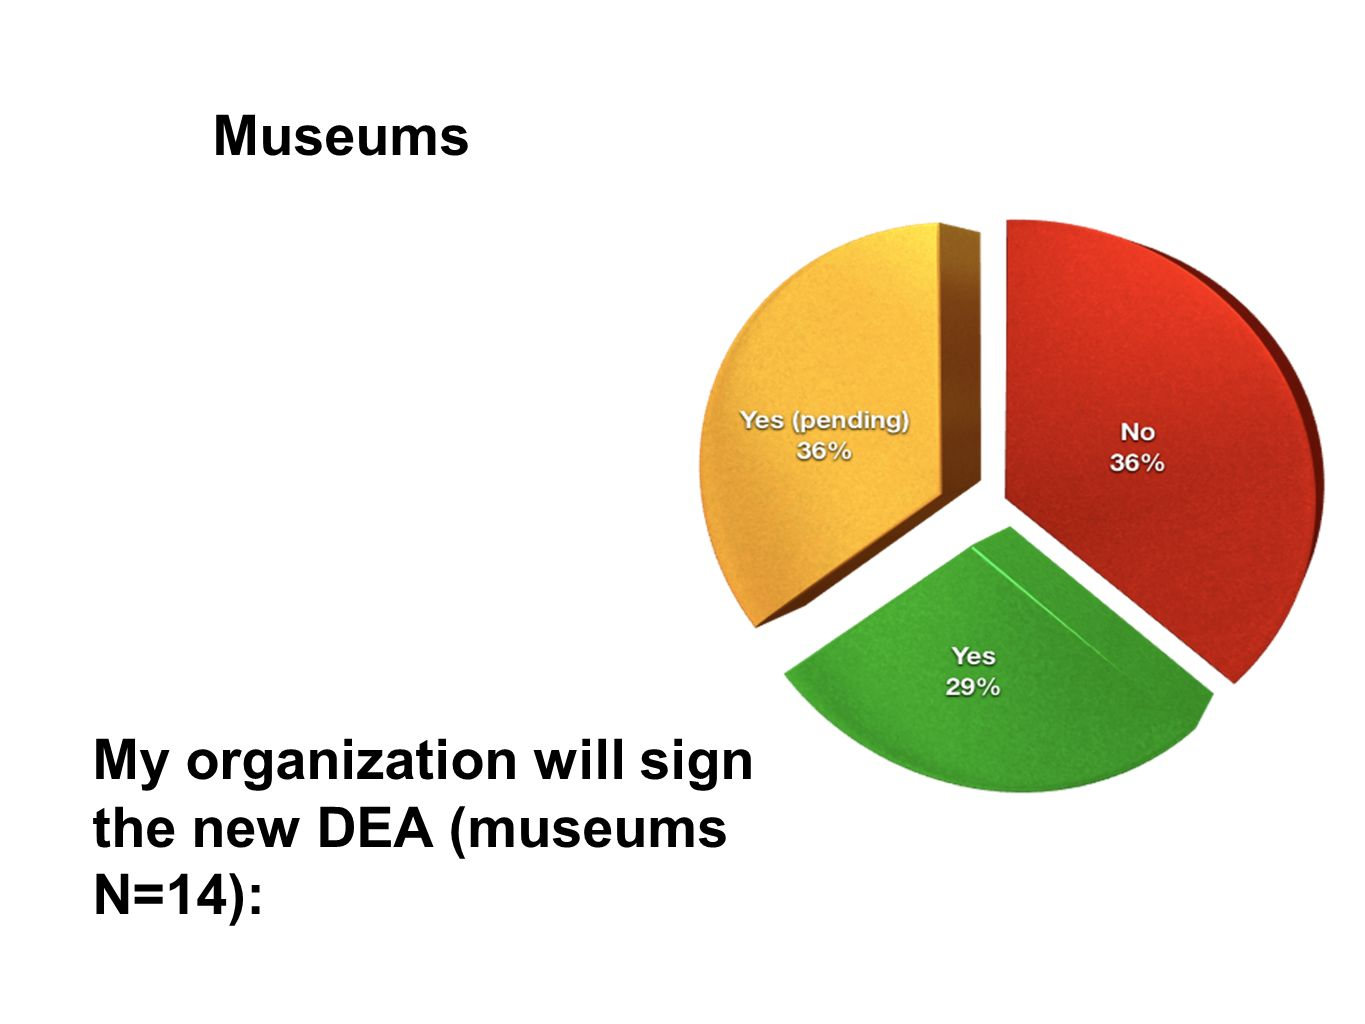 Museums My organization will sign the new DEA (museums N=14):